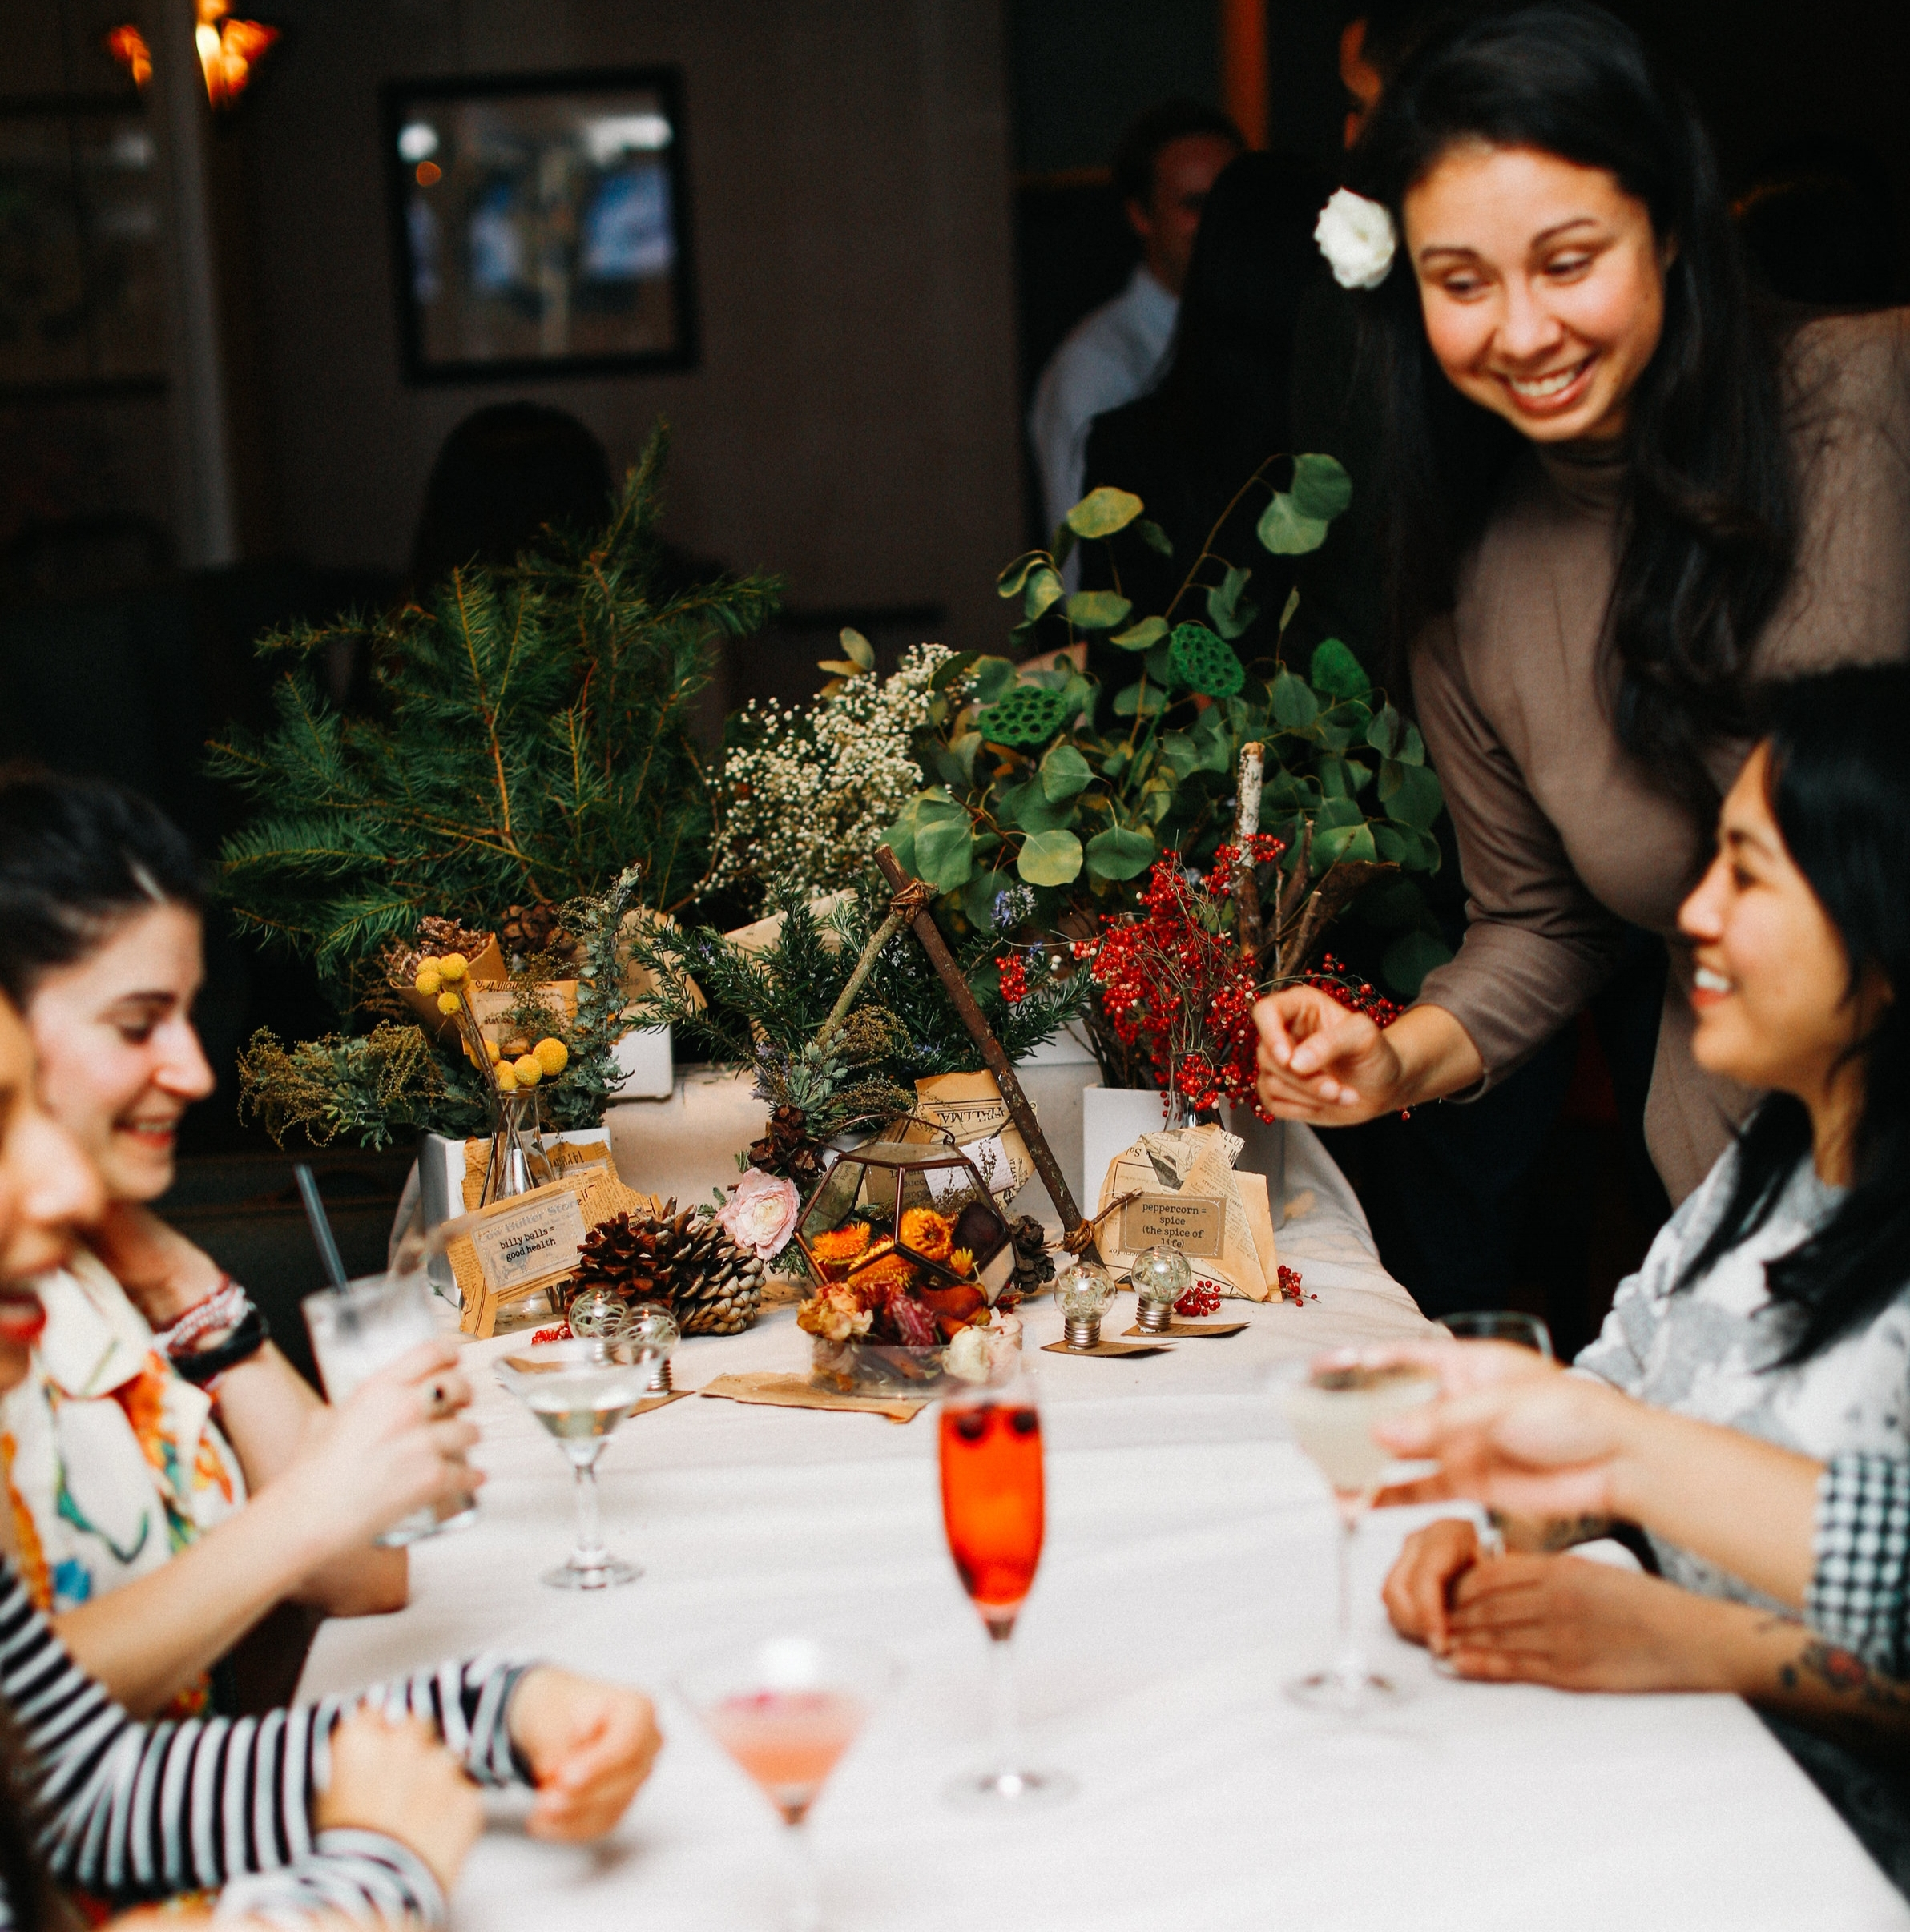 Join a Workshop      Tuesday,May 22, 2018   Just in time for this year's Lightning in a Bottle Festival, we'll be making flower tattoos (out of real flora!) that will last you through the dance party and beyond! Come make the ultimate festival accessory over bubbles.Afterwards, stay to enjoy a 20% discount off everything in the trendy SF boutique, Covet.https://flower-tattoo.eventbrite.com   Thursday, June 14th 2018- We've prepared a special flowery drink menu for you to enjoy while we lead you in the creation of a movement-focused floral arrangement using the lost language of flowers. This workshop overlooks downtown San Francisco from the inside of a beautiful, historic bar. Ticket includes all materials and a flowery cocktail exclusive to this collaboration. $99. In order to keep price low, workshop minimum is 10 people. Full refunds will be issued if min. not met 3 days before event.Email hi@bloomequation.com to purchase.